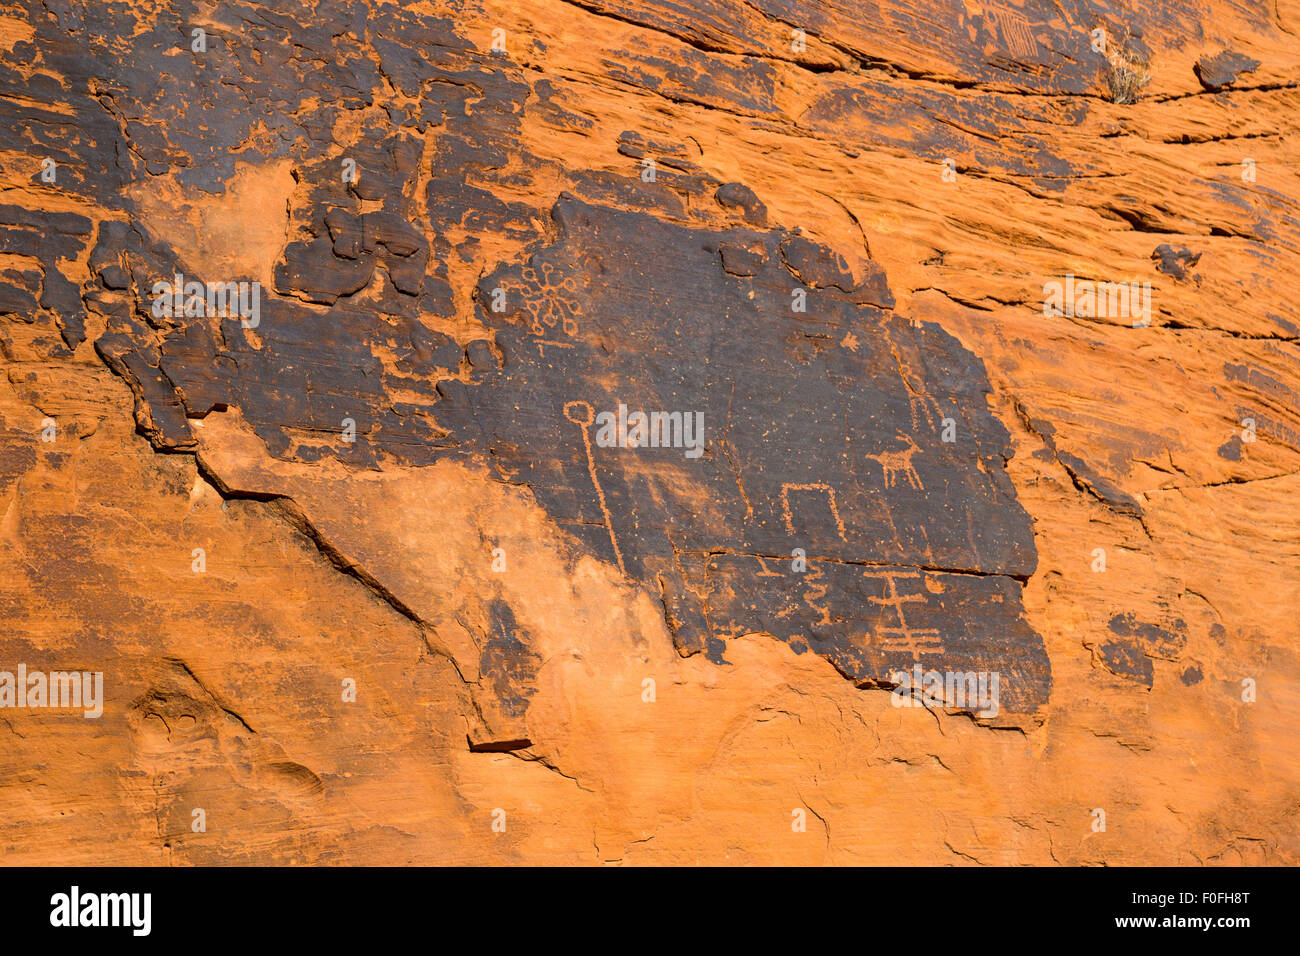 Ancient rock art and carving in Valley of Fire State Park, South Nevada - Stock Image